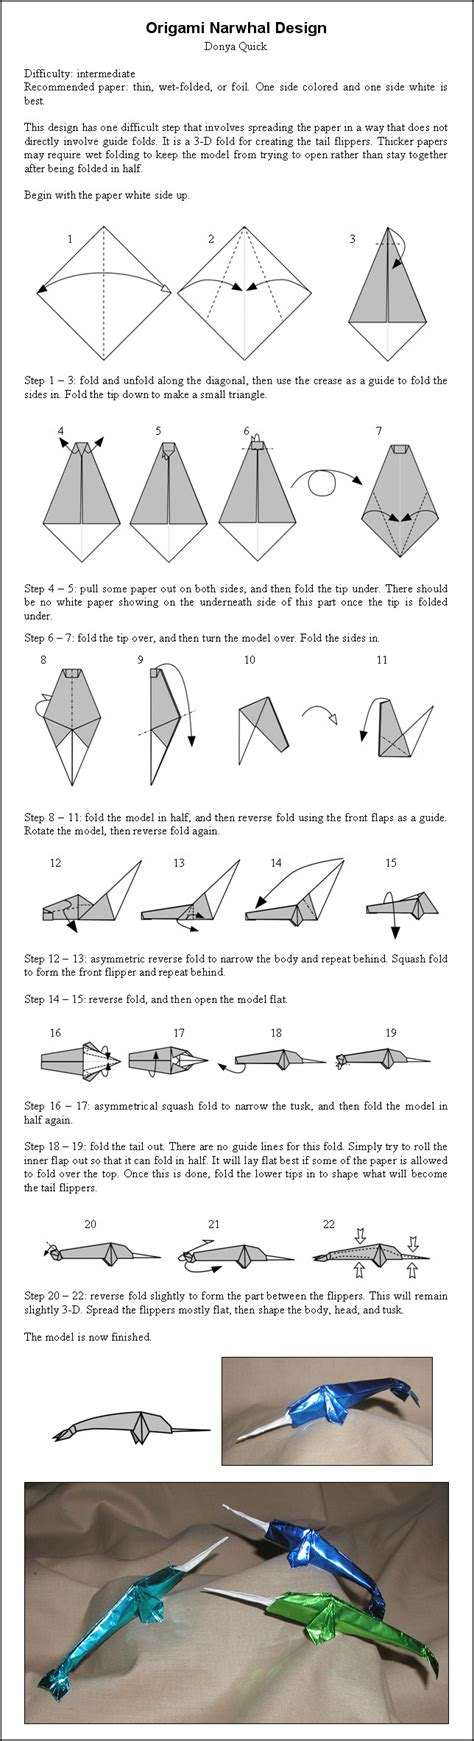 How To Make An Origami Narwhal - origami narwhal by donyaquick on deviantart